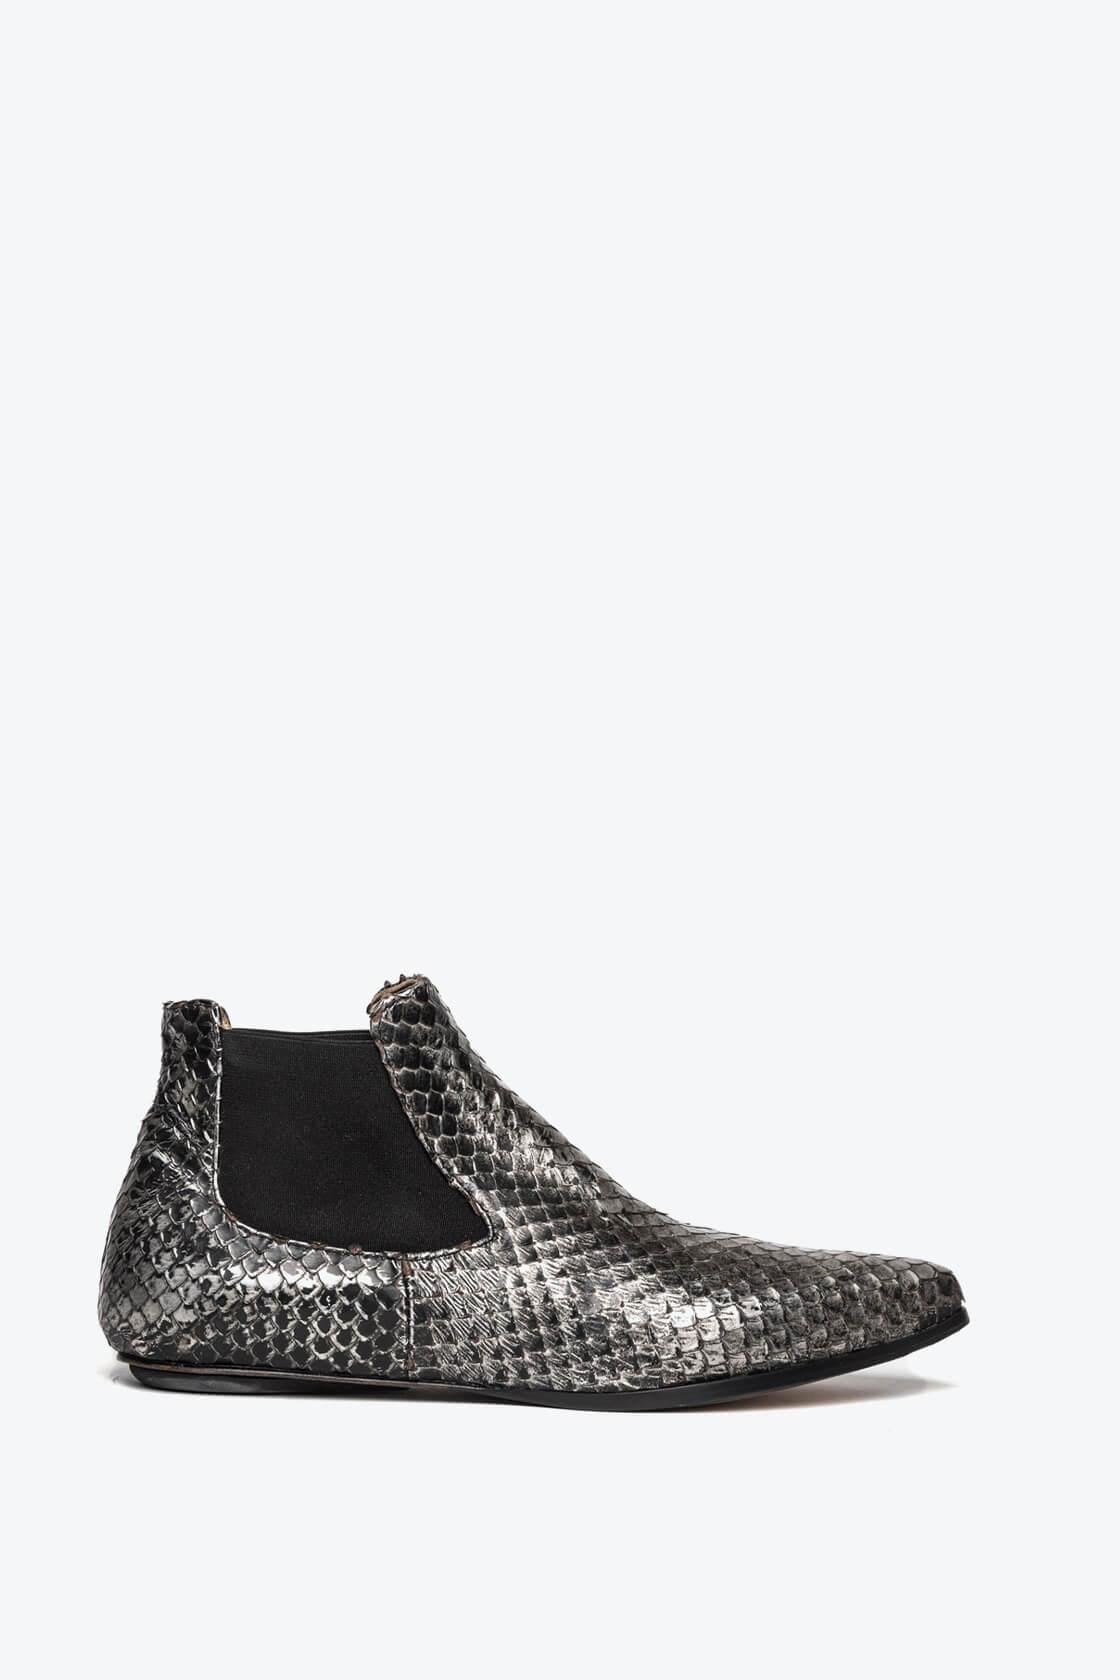 EJK0000061 Niki chelsea boots silver washed python 1